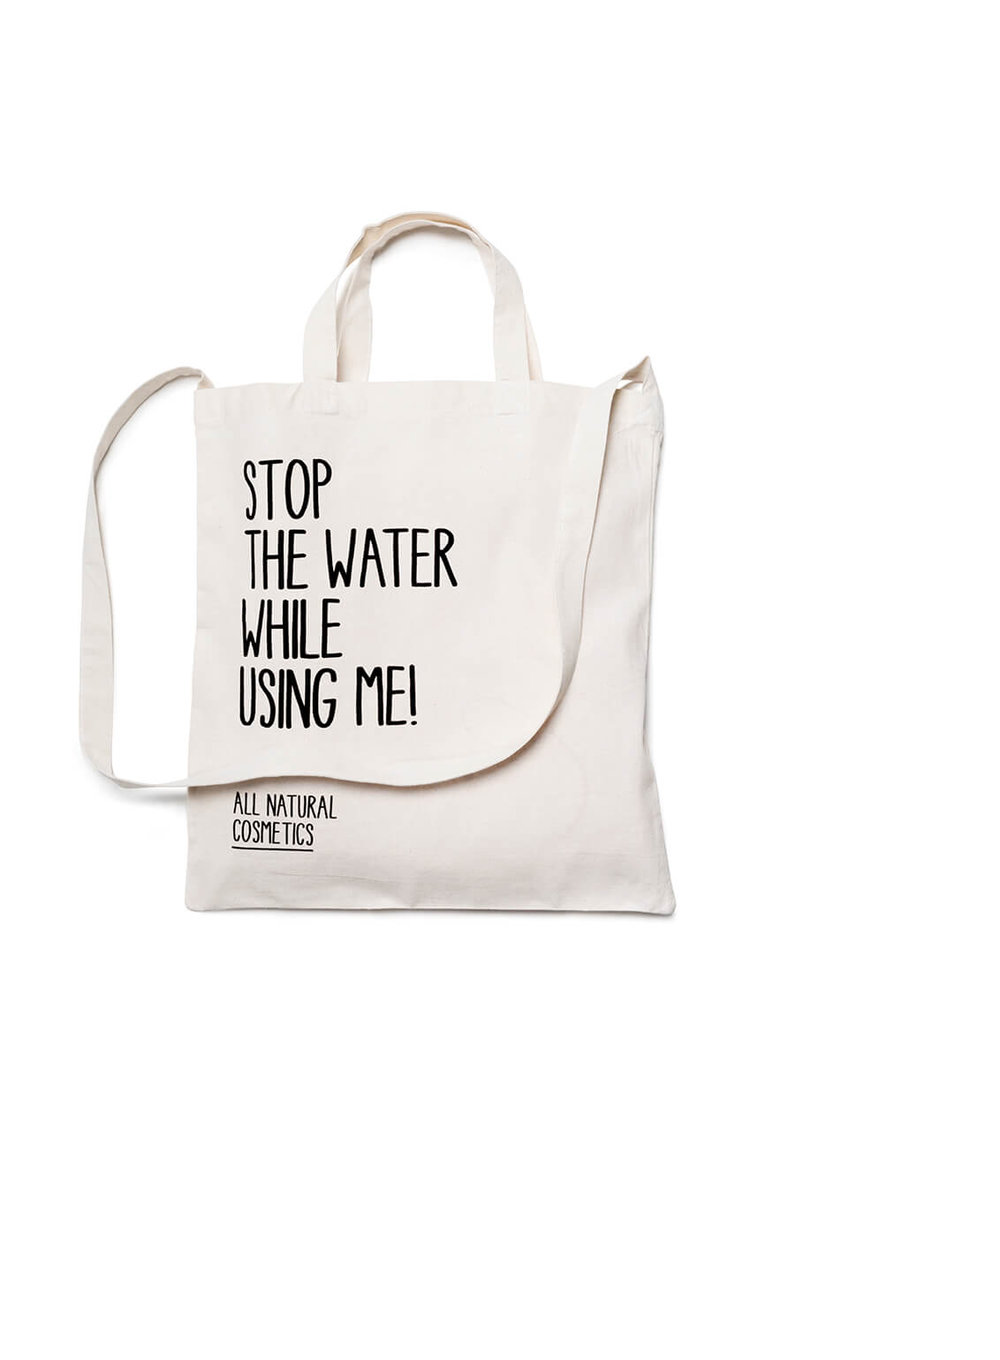 All Natural Cosmetics Tote Bag